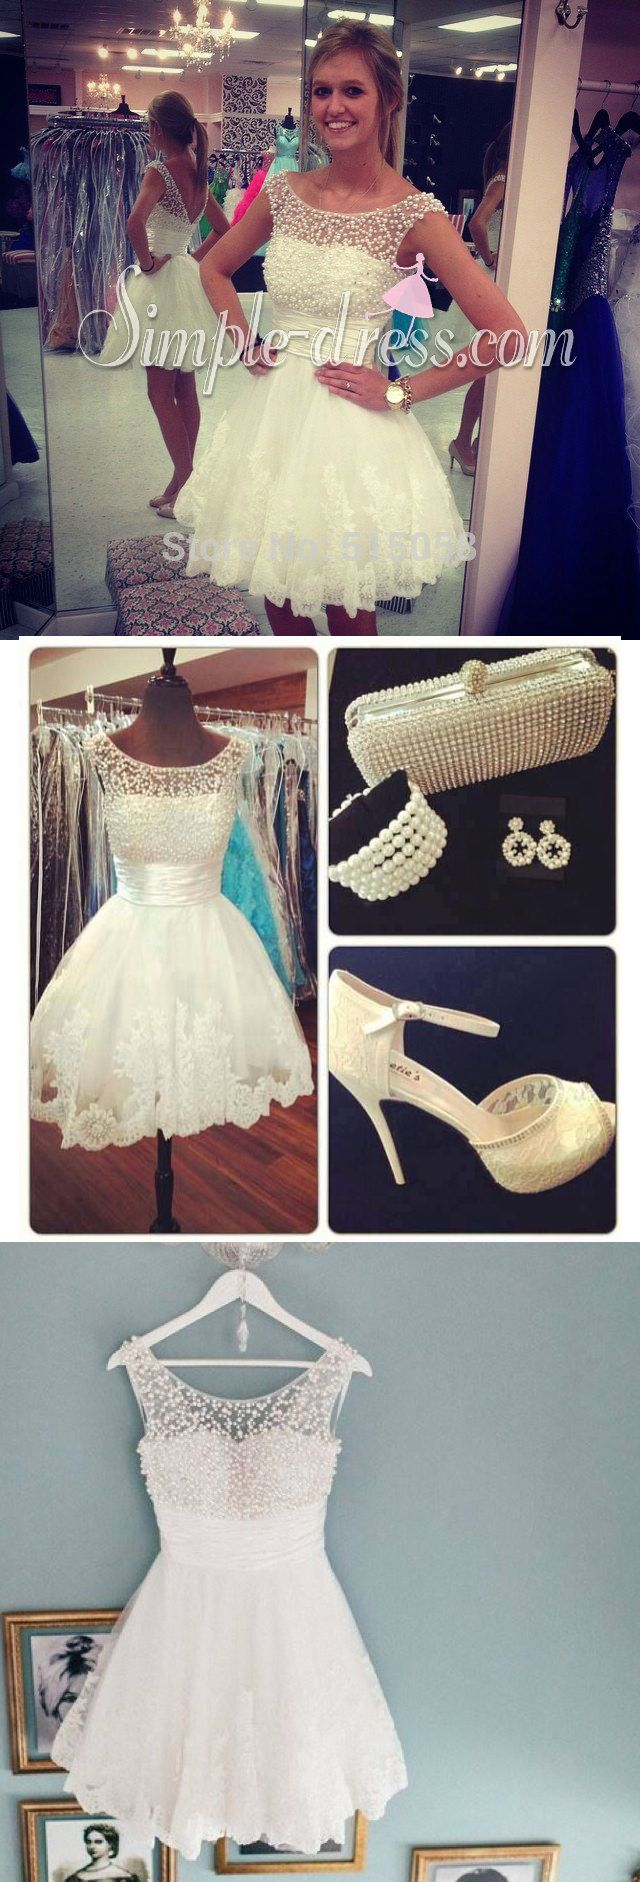 Maybe for bachelorette or rehearsal dinner?!?